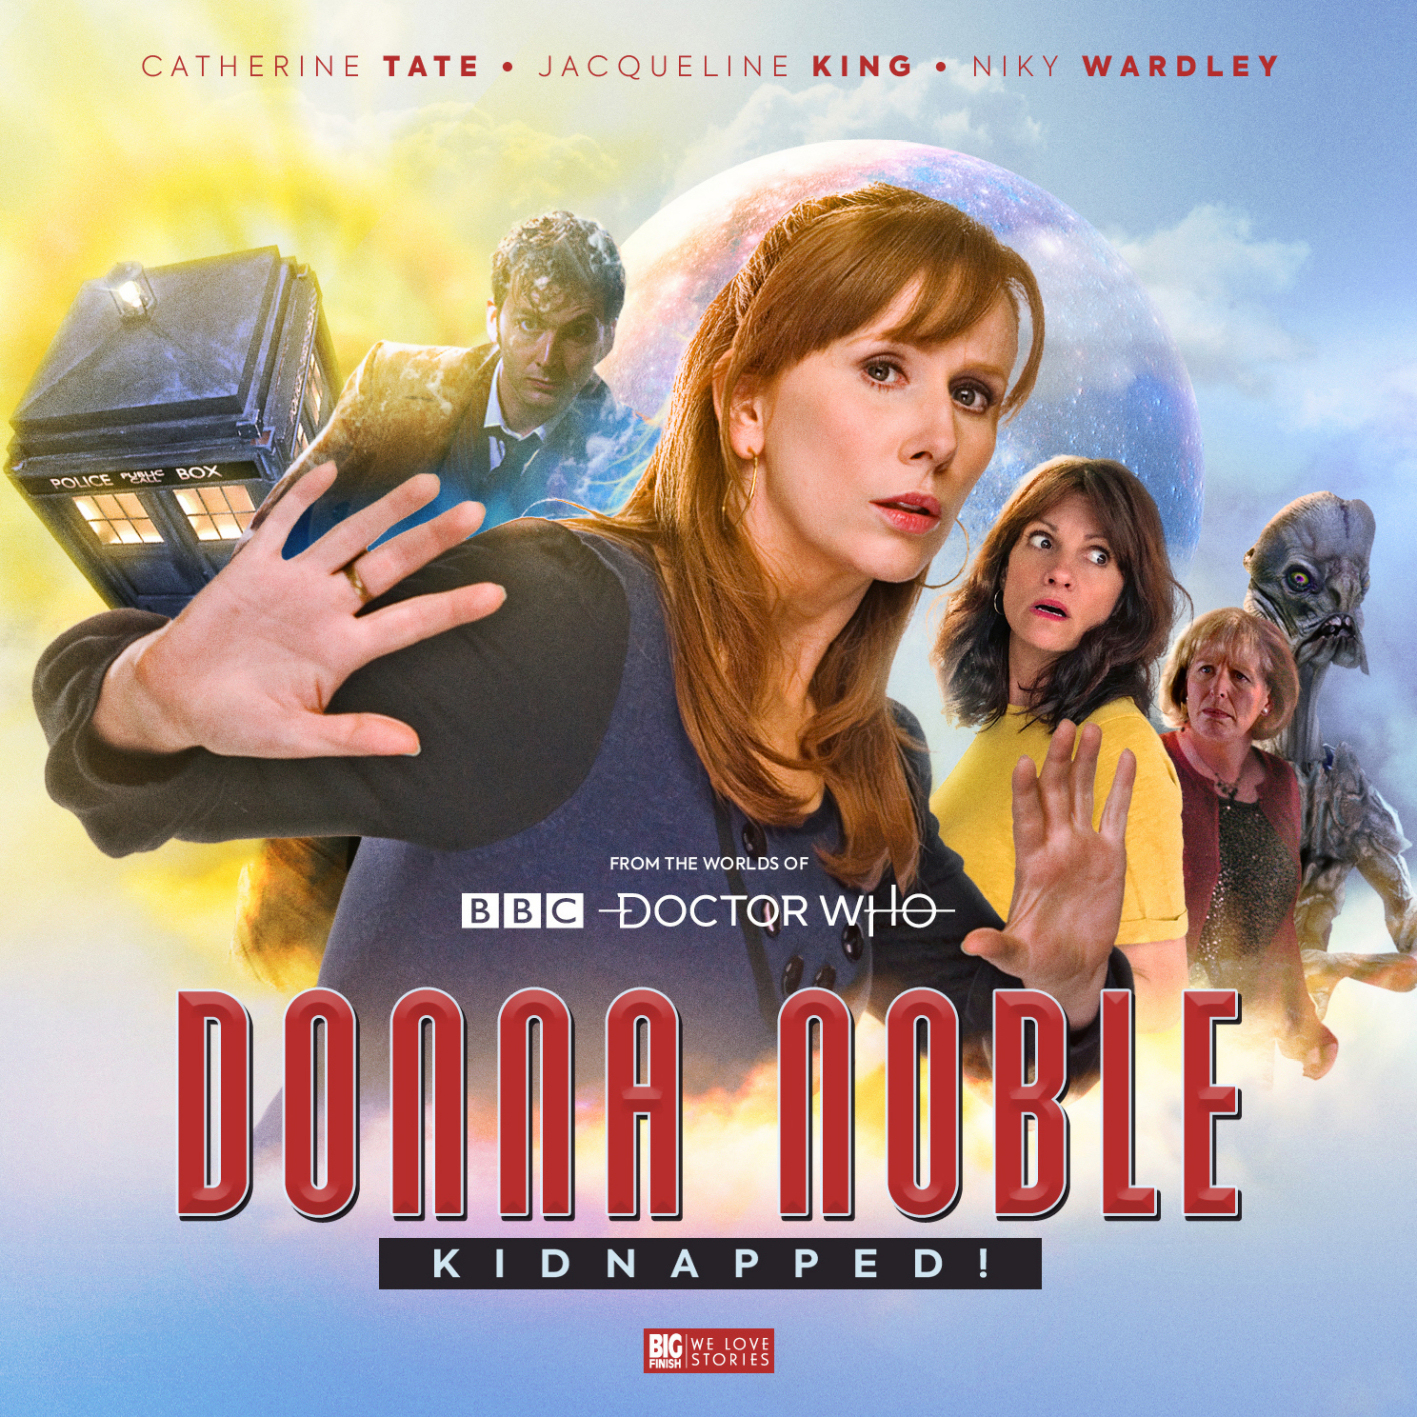 Doctor Who spin-off review: Donna Noble: Kidnapped! is a wonderful tribute to a much-loved companion